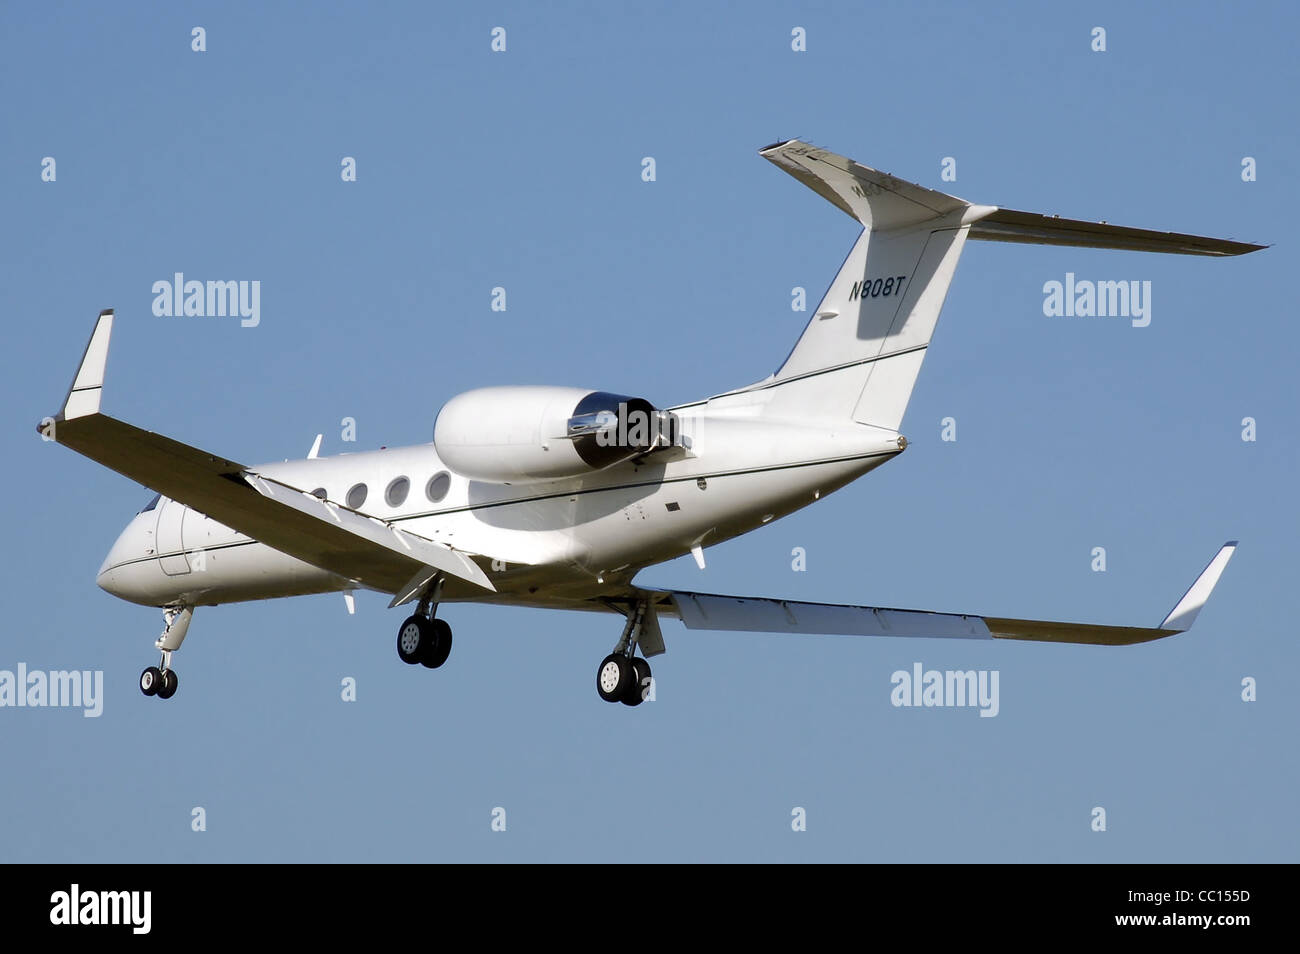 Gulfstream Aerospace G-IV-SP (N808T) business jet landing at London Heathrow Airport, England. - Stock Image